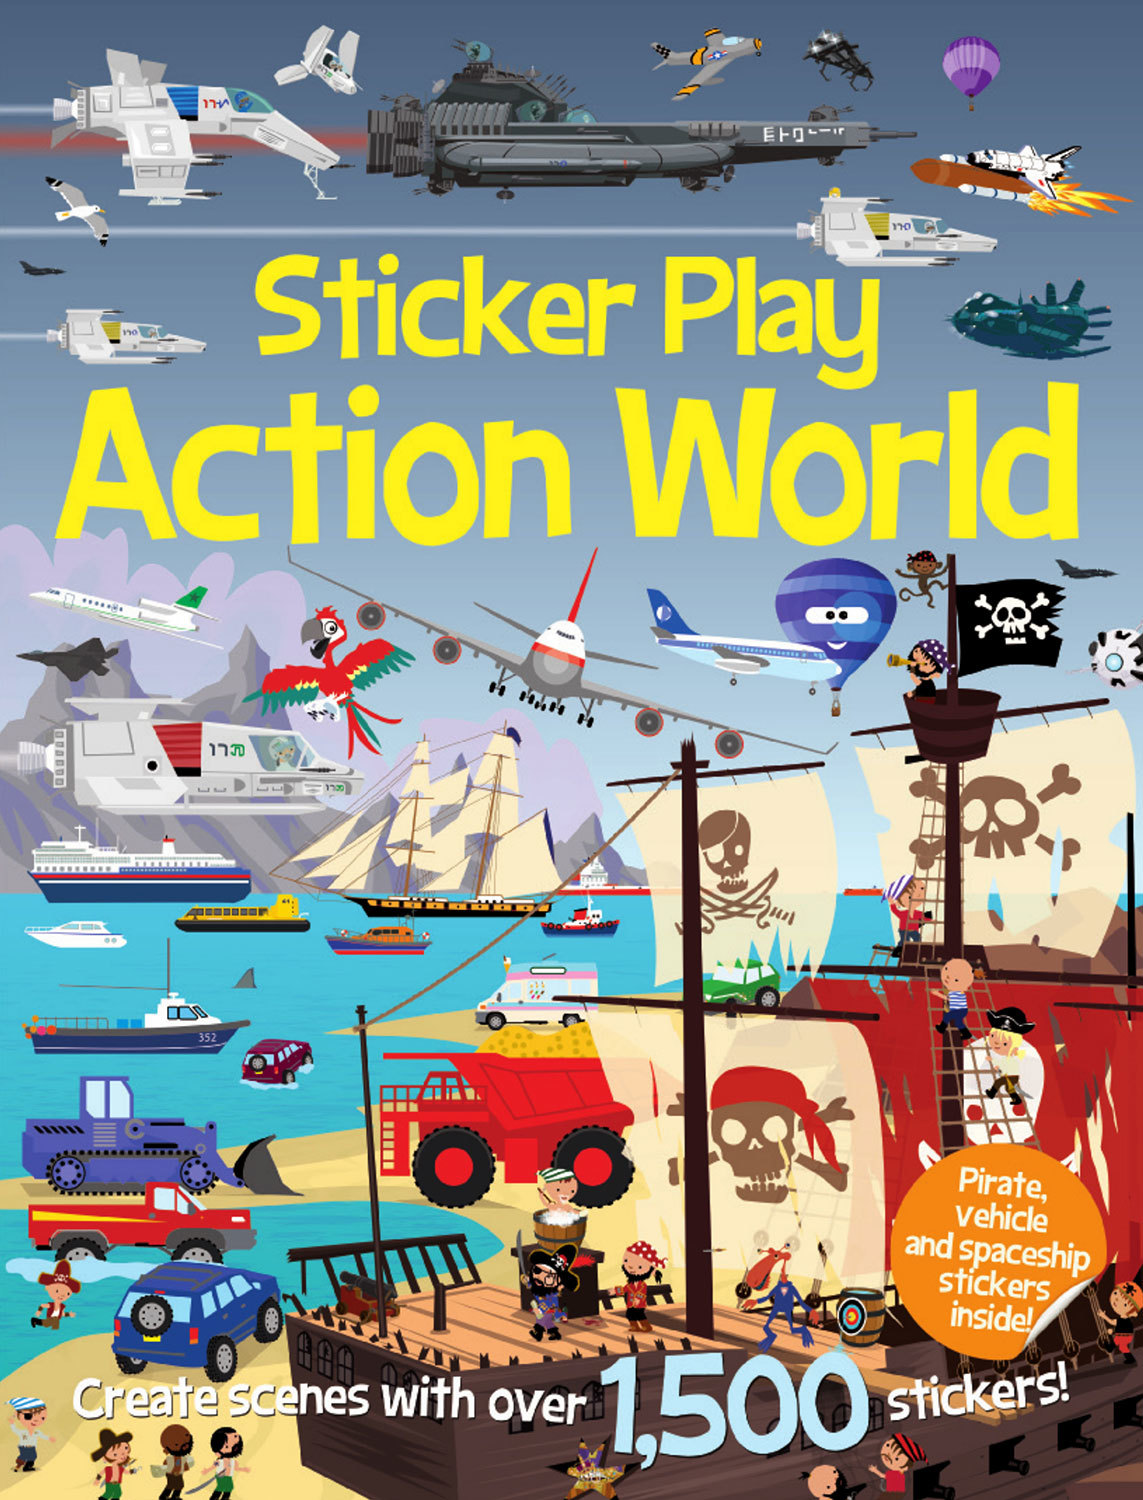 STICKER PLAY ACTION WORLD